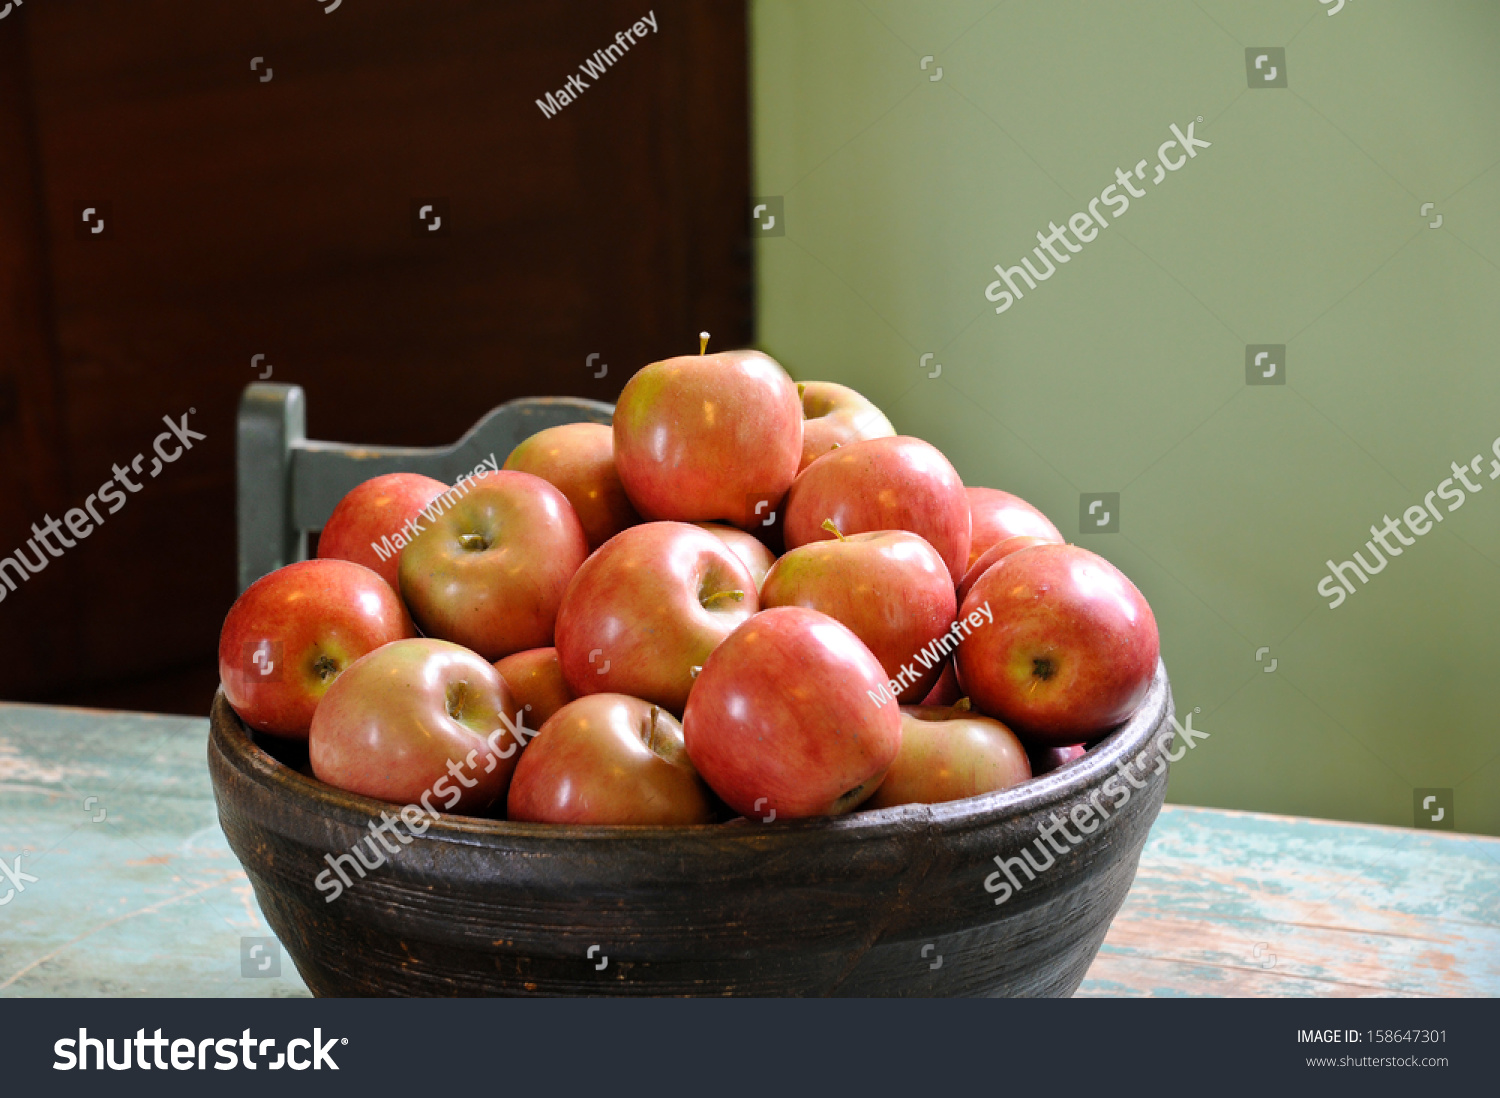 stock-photo-bowl-of-apples-on-table-in-n